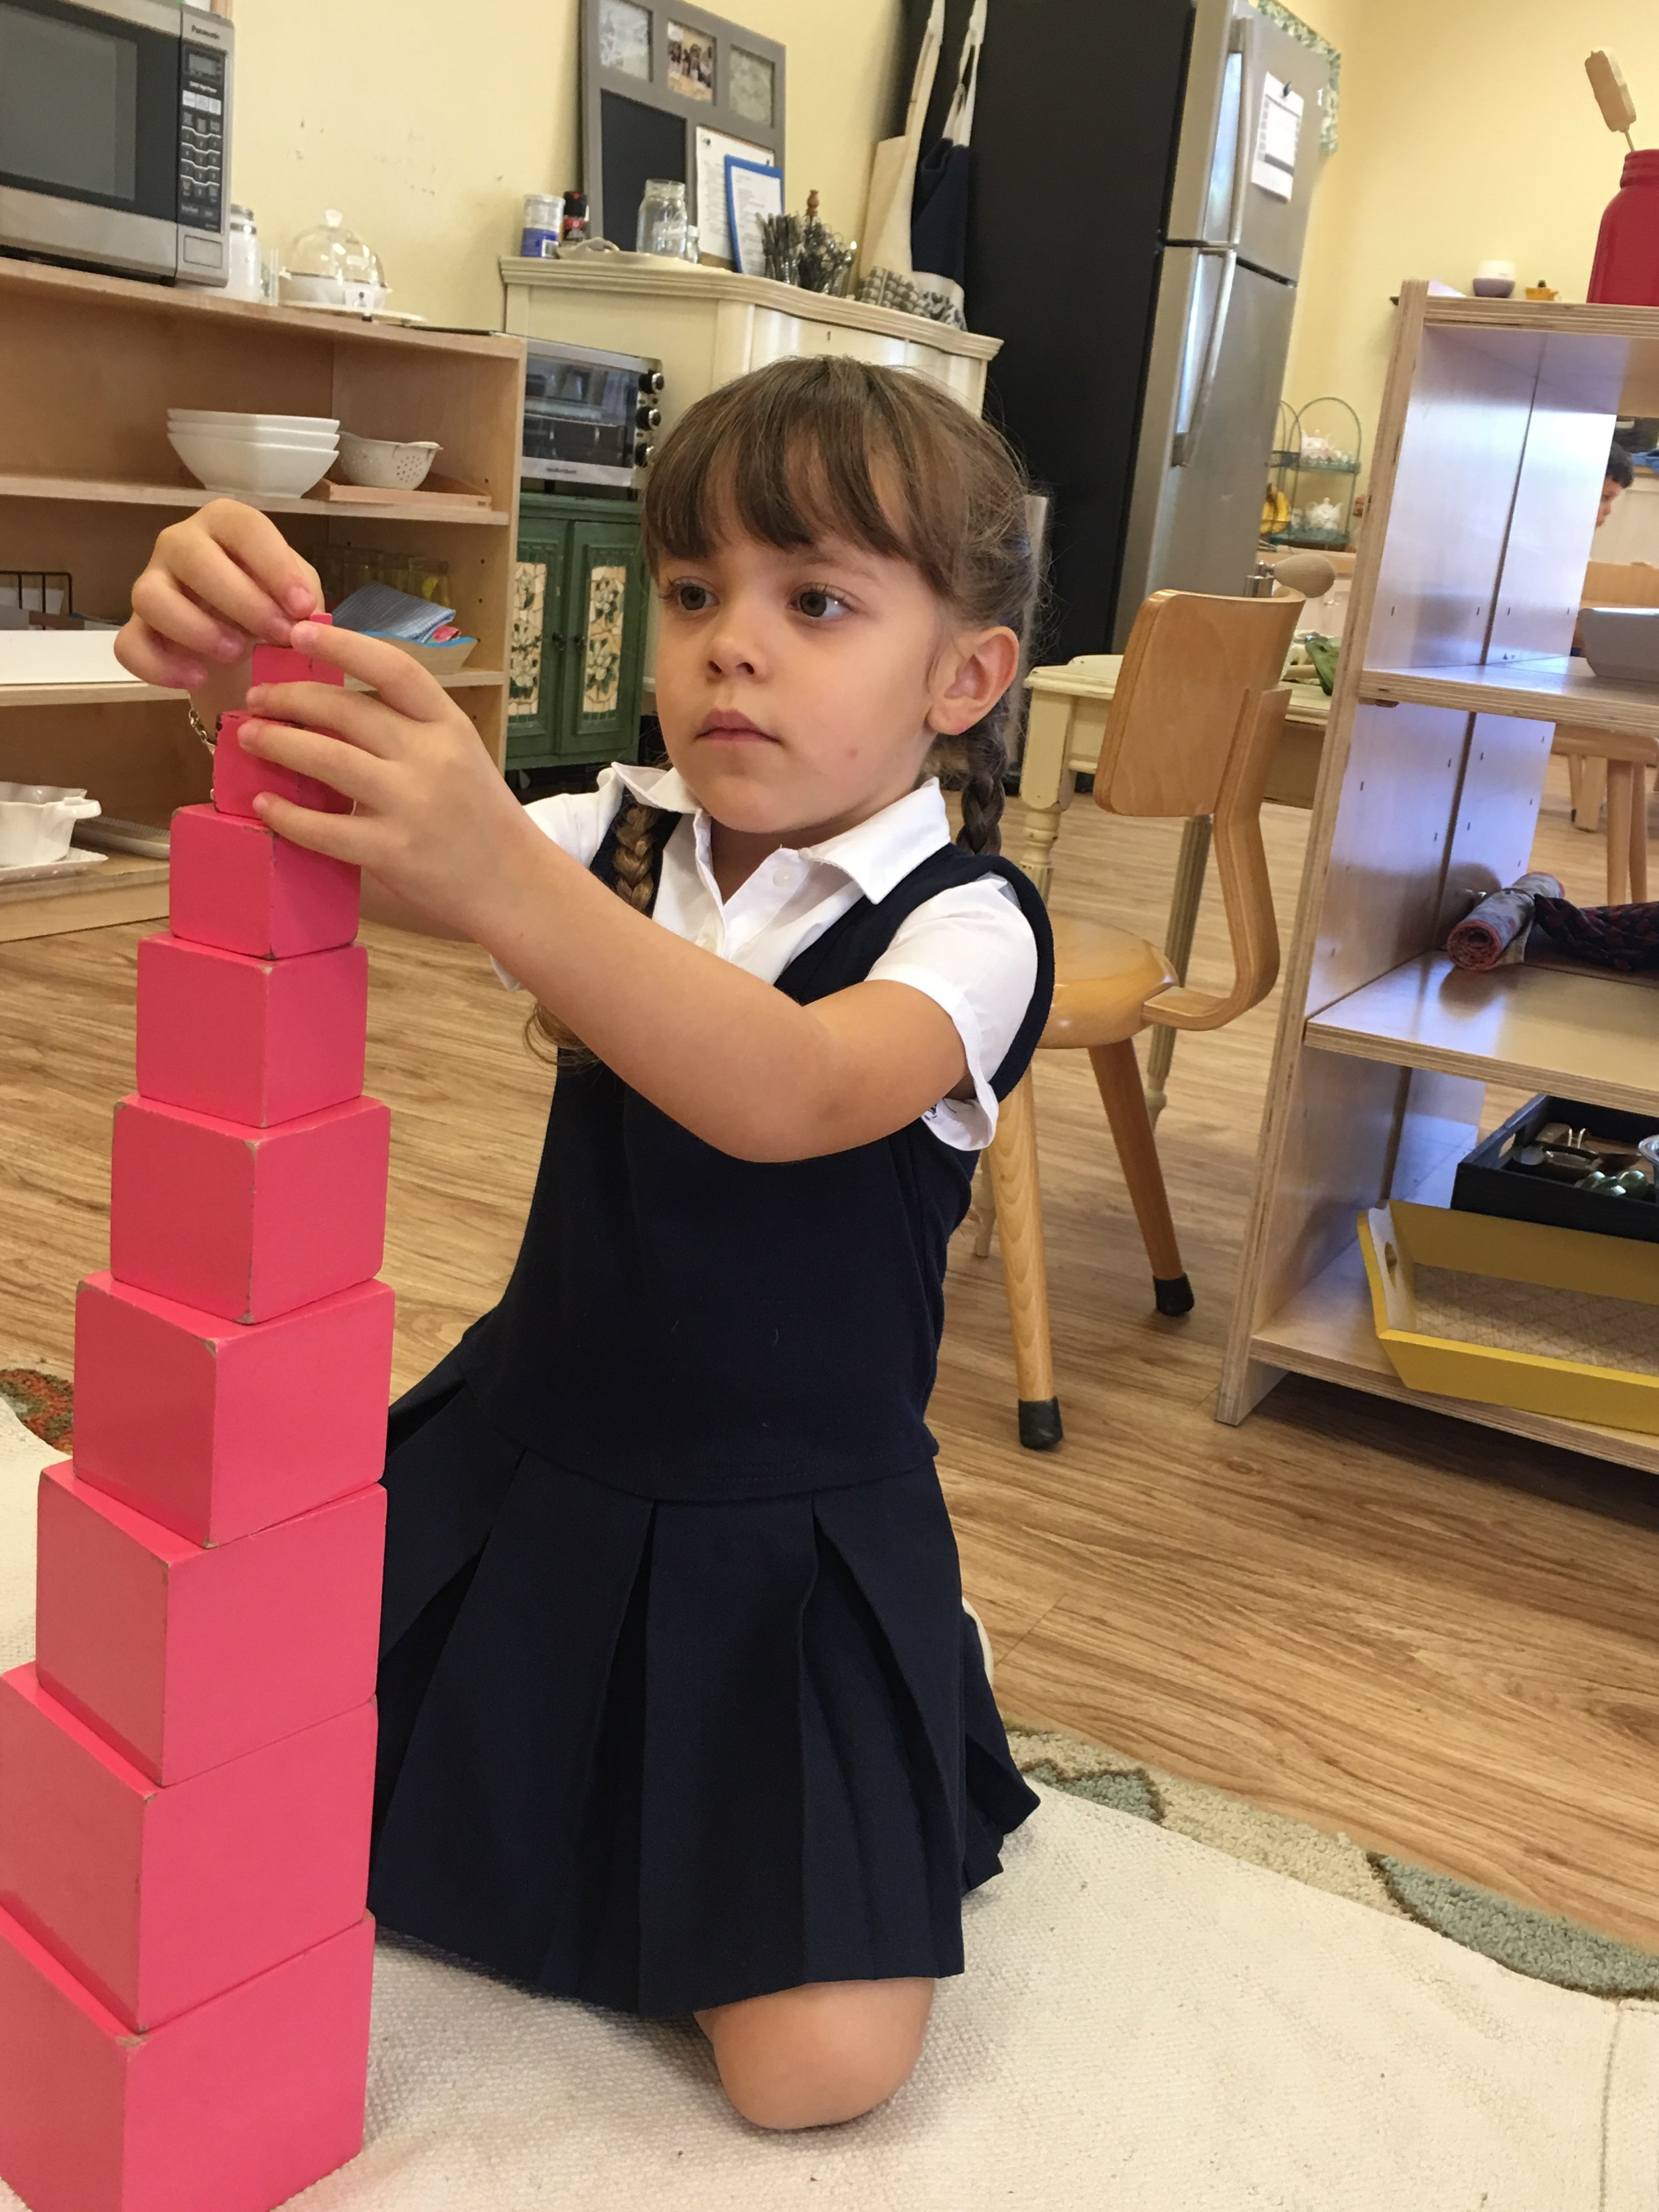 Completing the Pink Tower